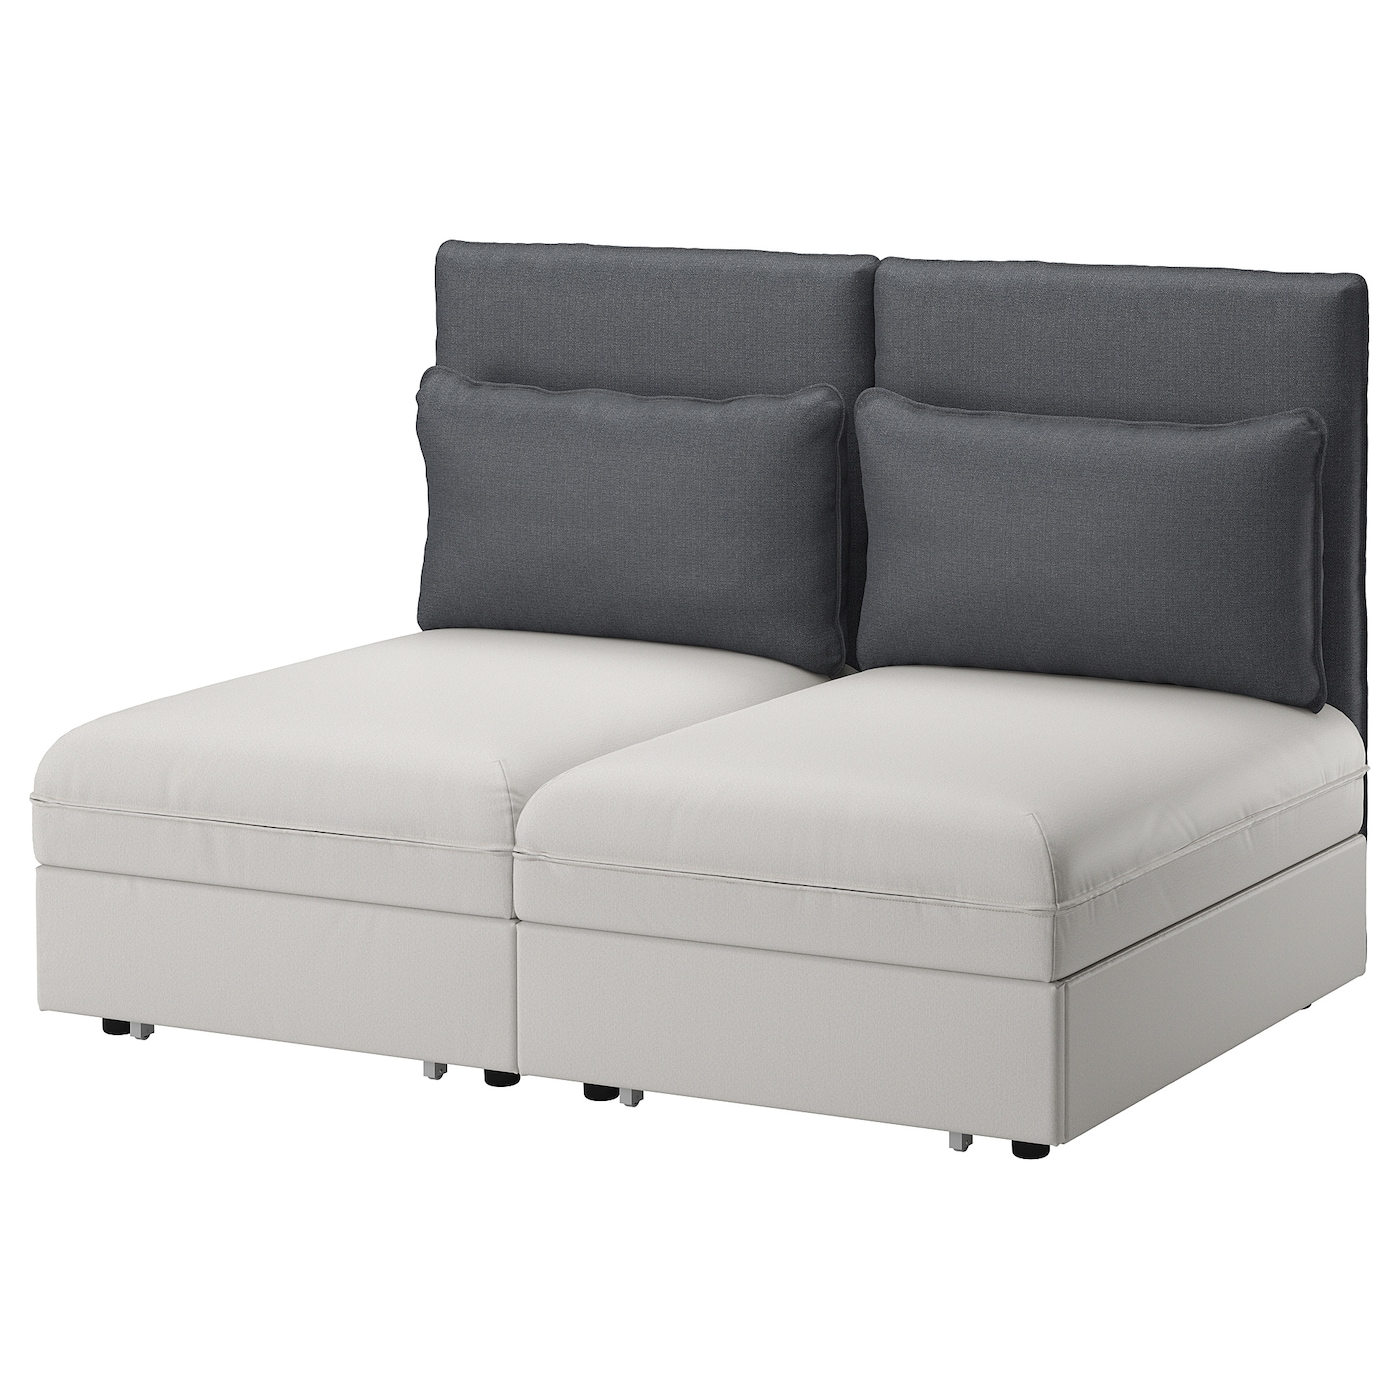 Vallentuna 2 seat sofa with bed ramna light grey hillared for 120 bett ikea